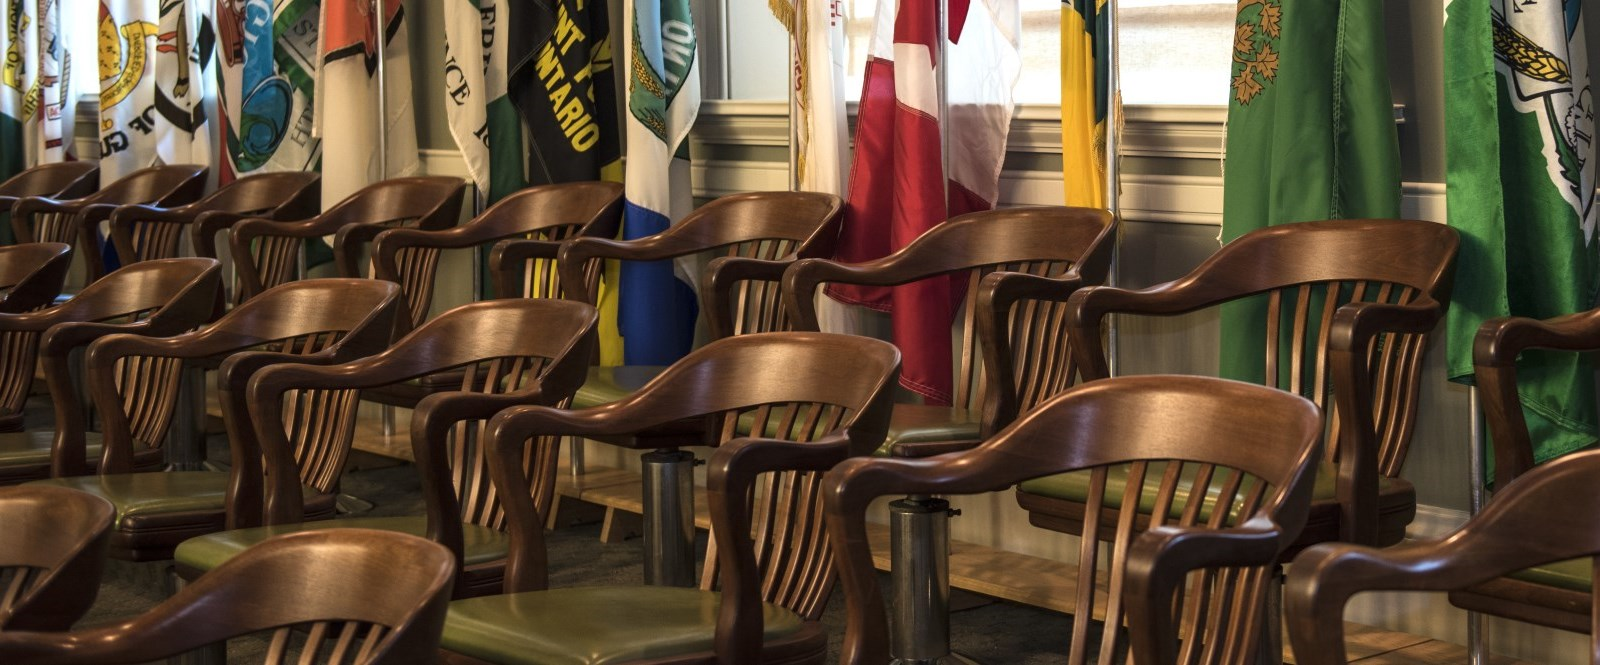 Wooden chairs in fron of row of flags